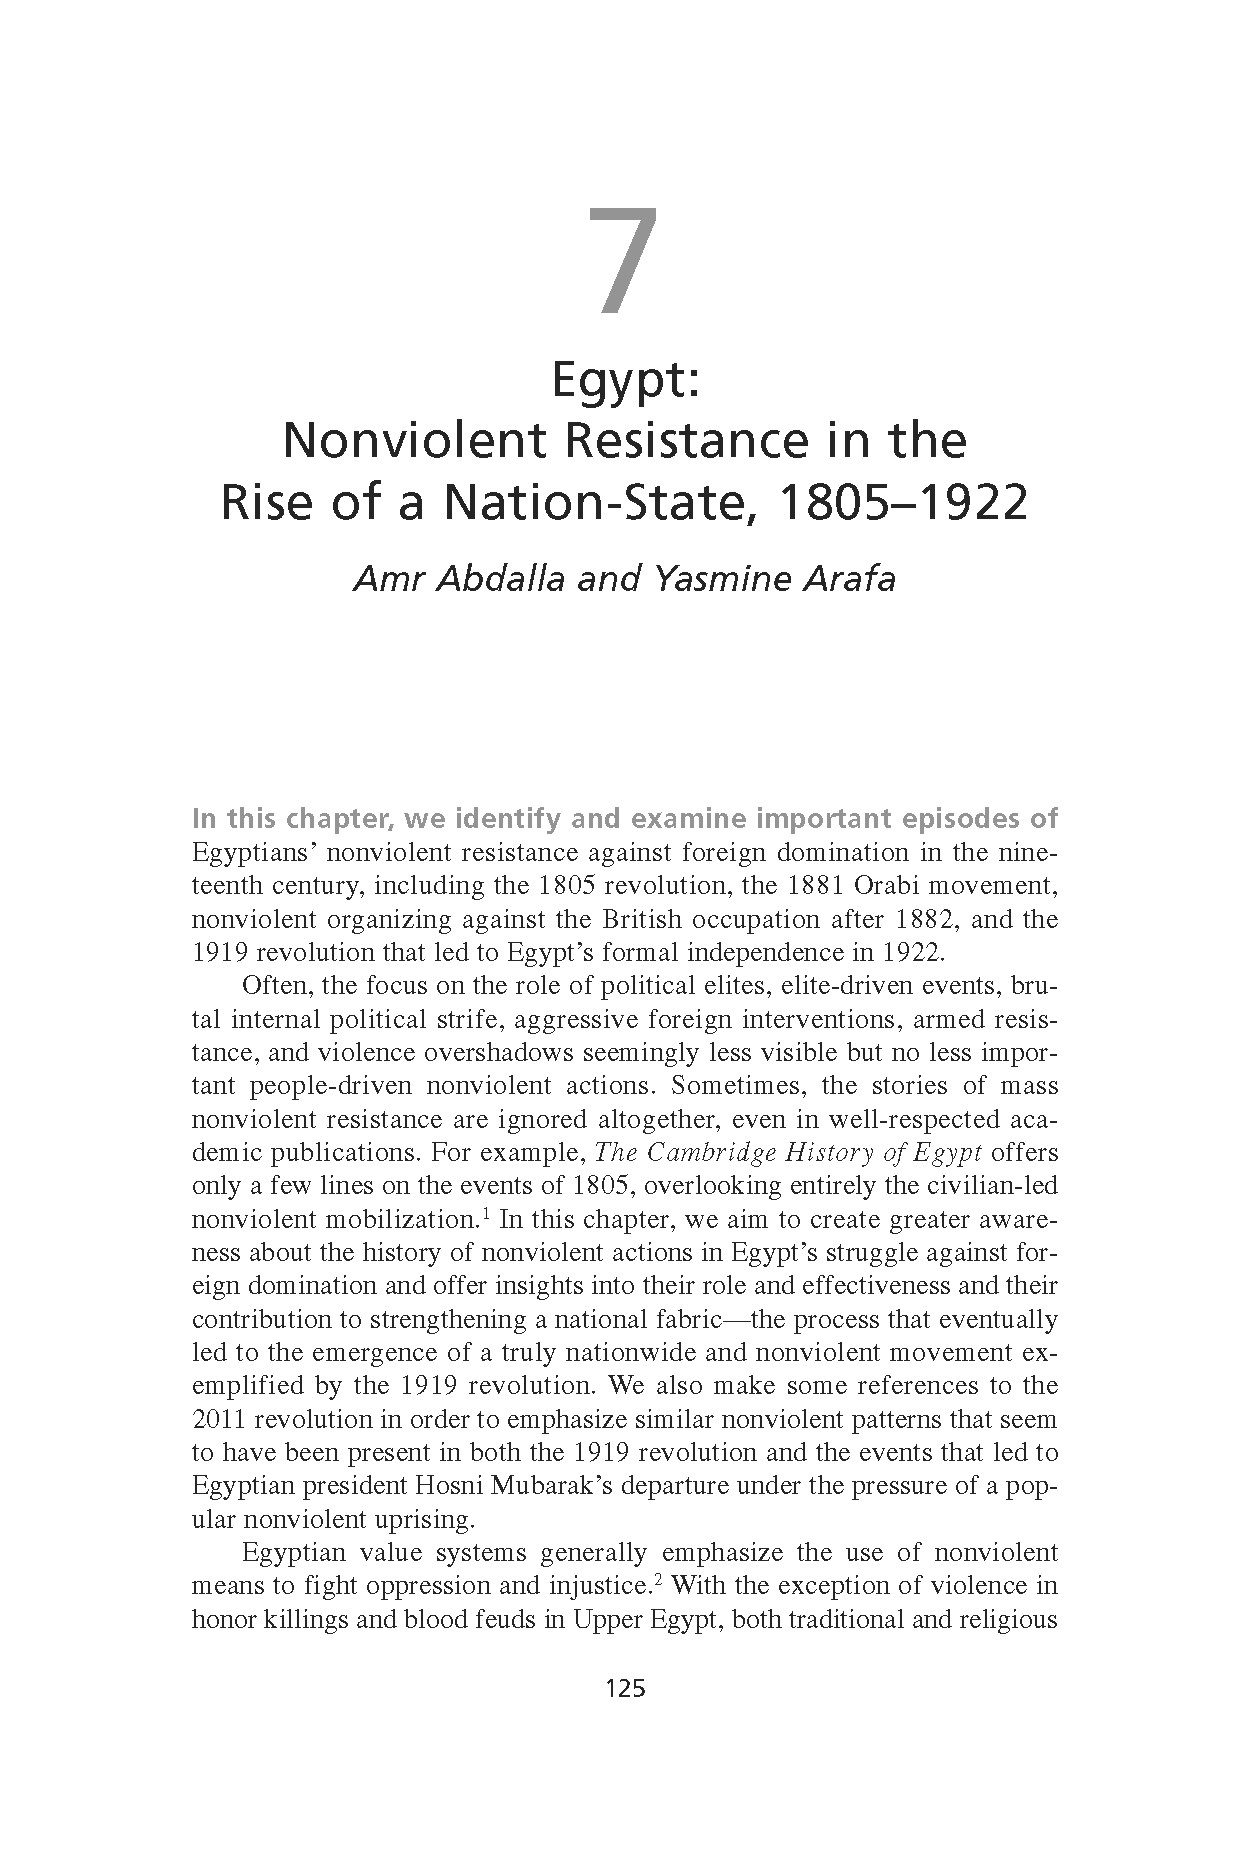 Egypt: Nonviolent Resistance in the Rise of a Nation-State, 1805-1922 (Chapter 7 from 'Recovering Nonviolent History')